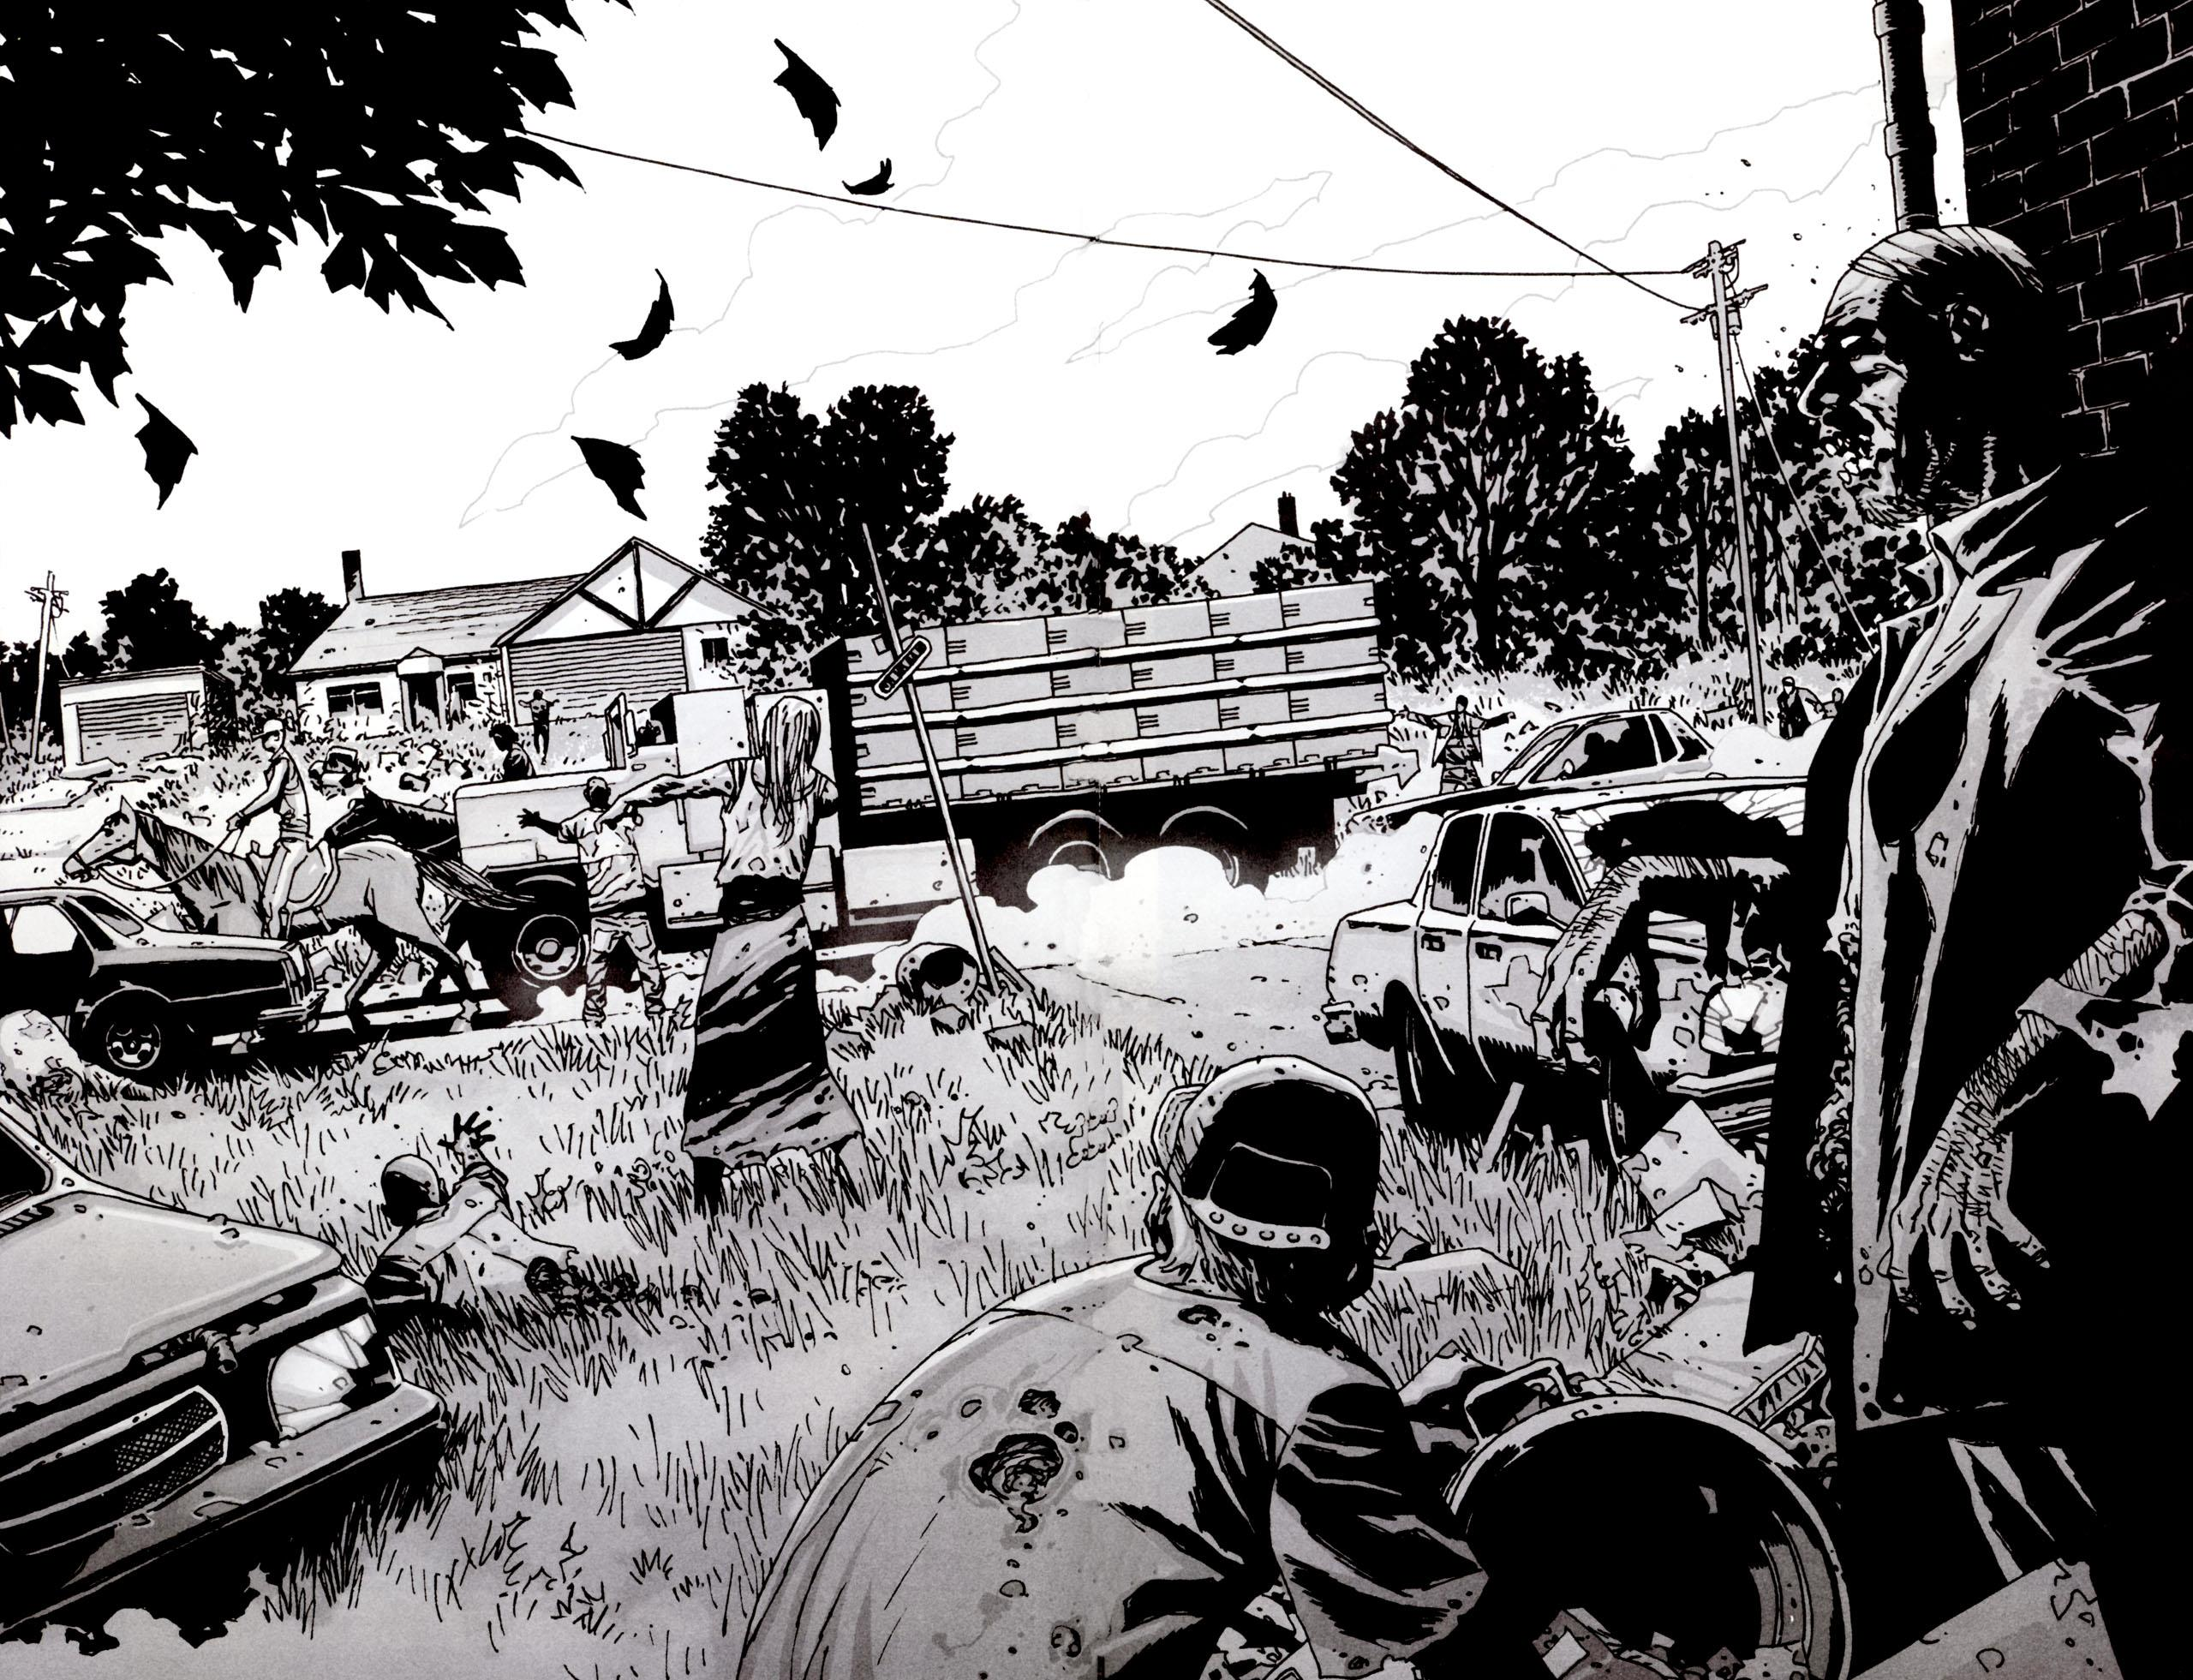 The Walking Dead 10 What We Become review